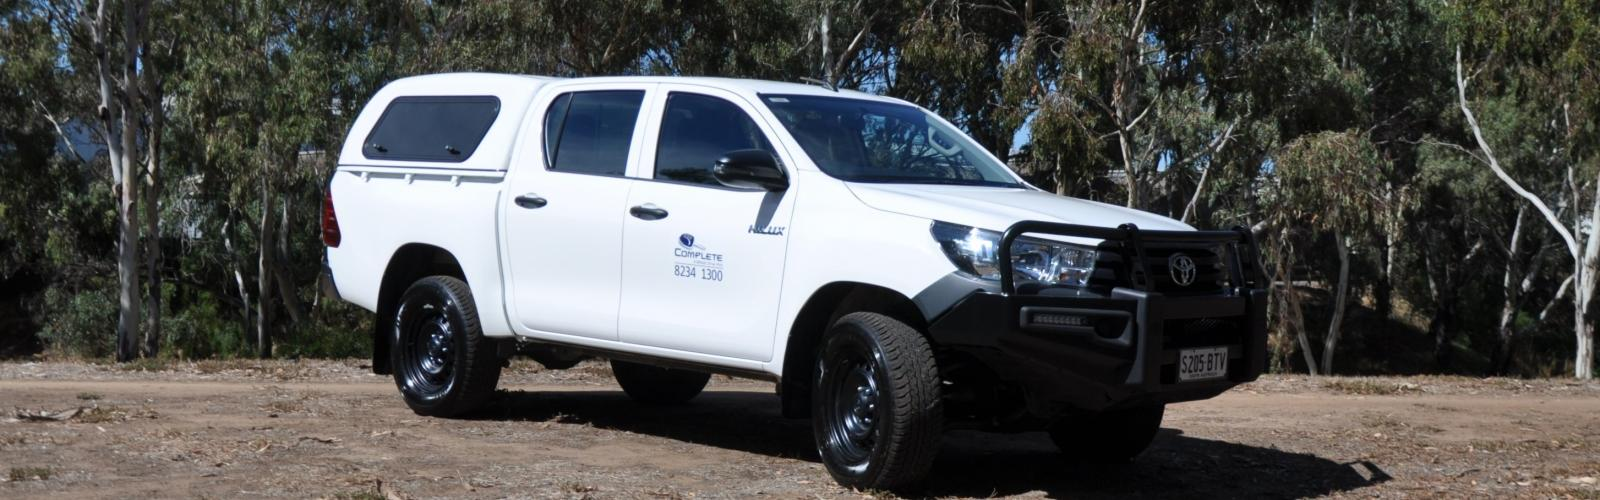 4WD Toyota Hilux Dual Cab Canopy 4WD Hire 3